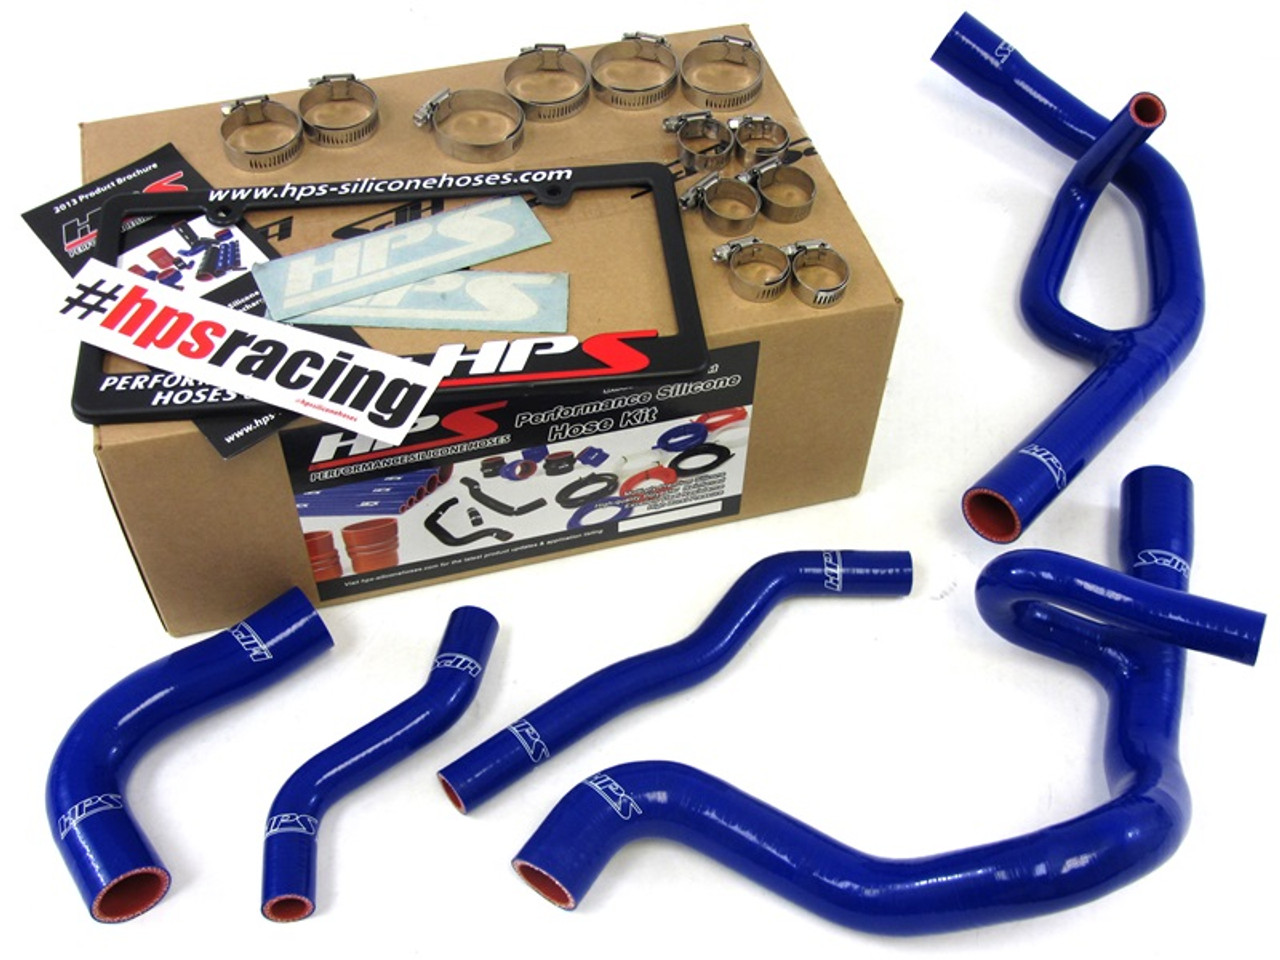 Hps Performance Reinforced Blue Silicone Radiator Hose Kit Coolant For Dodge 13 16 Dart 2 0l 2 4l Non Turbo Enjuku Racing Parts Llc